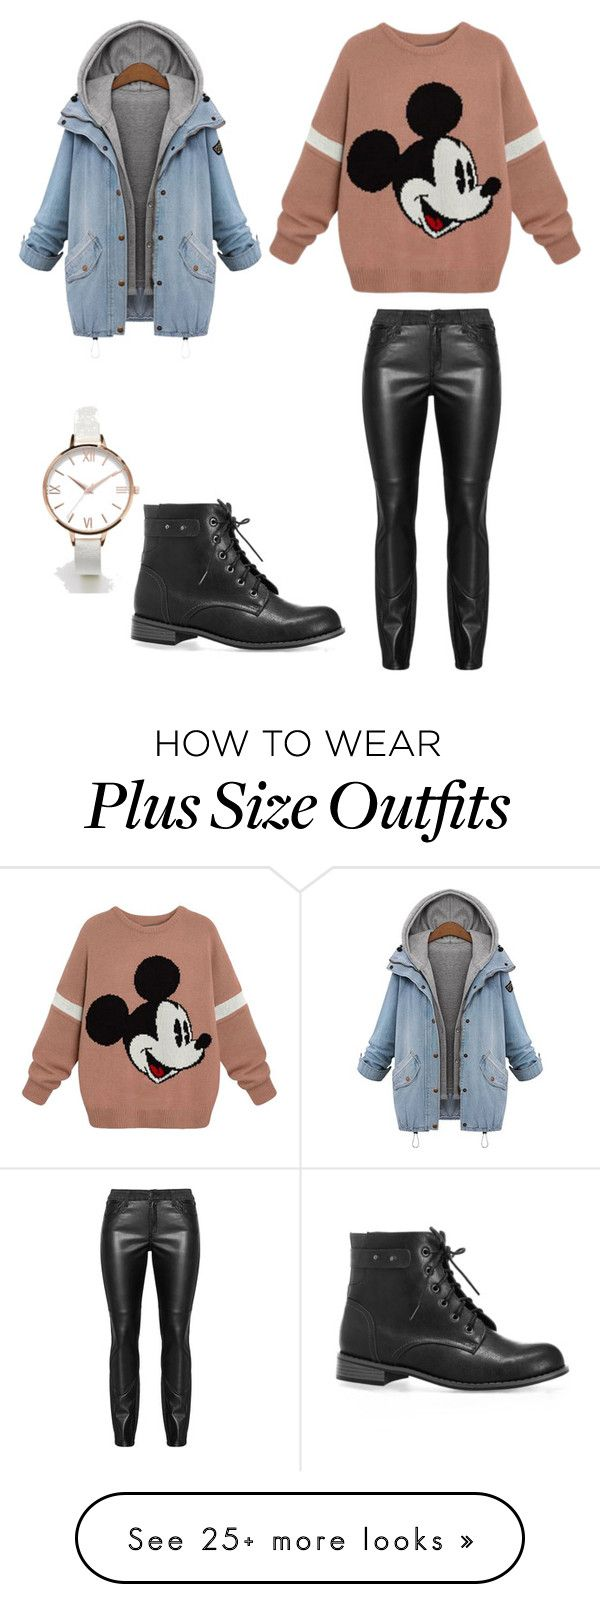 """""""Plus size outfit"""" by nena0700 on Polyvore featuring ASOS Curve and Avenue"""